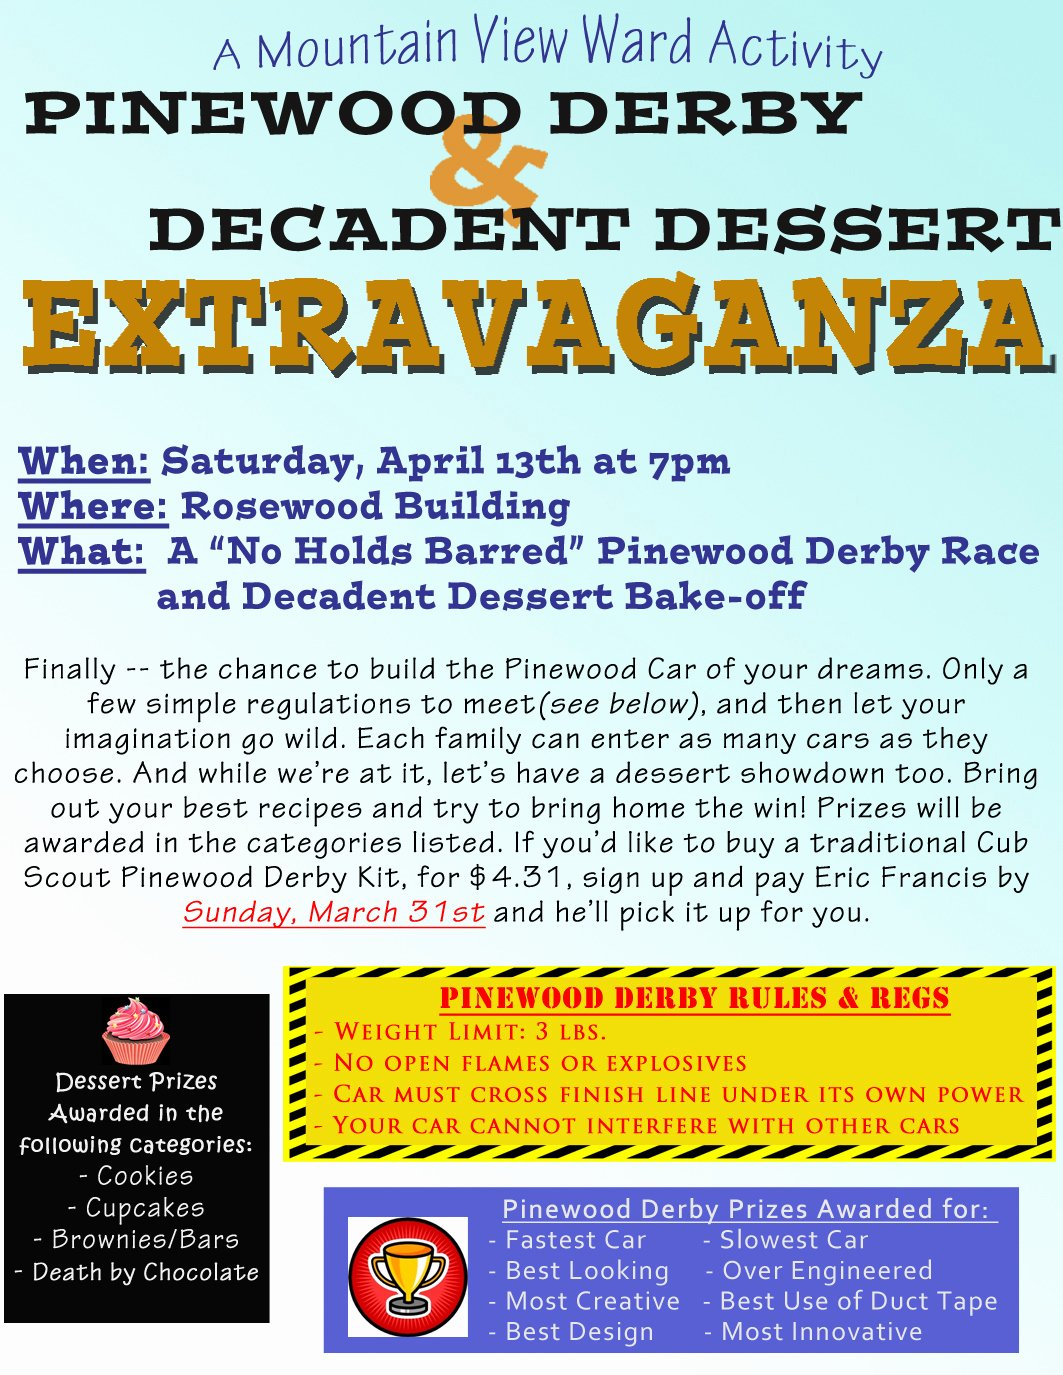 Pinewood Derby Flyer Template Unique Relief society Corner April Ward Activity Pinewood